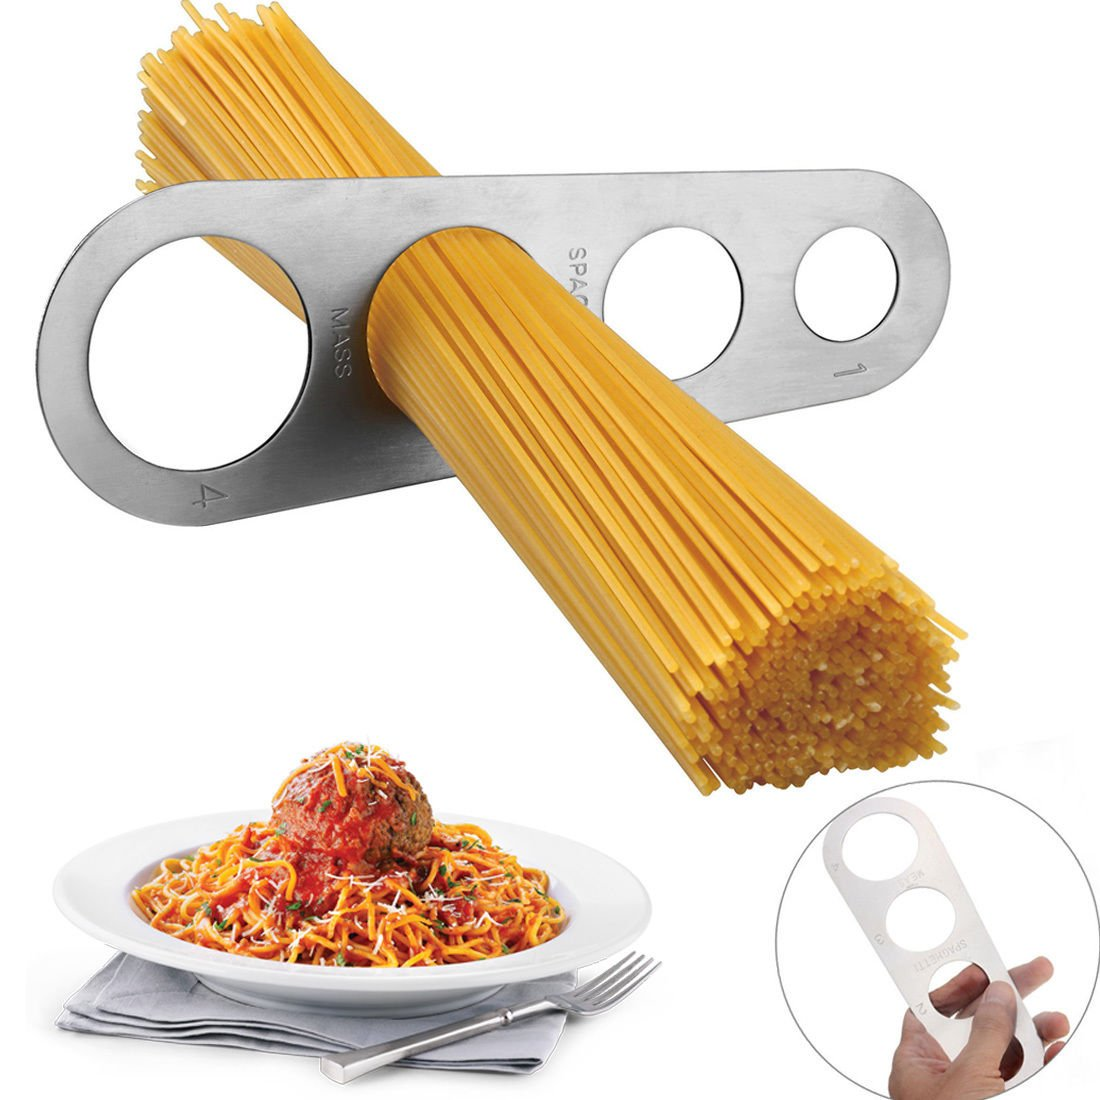 Cooltechstuff - Housewares Stainless Steel Spaghetti Measure. 1-4 People